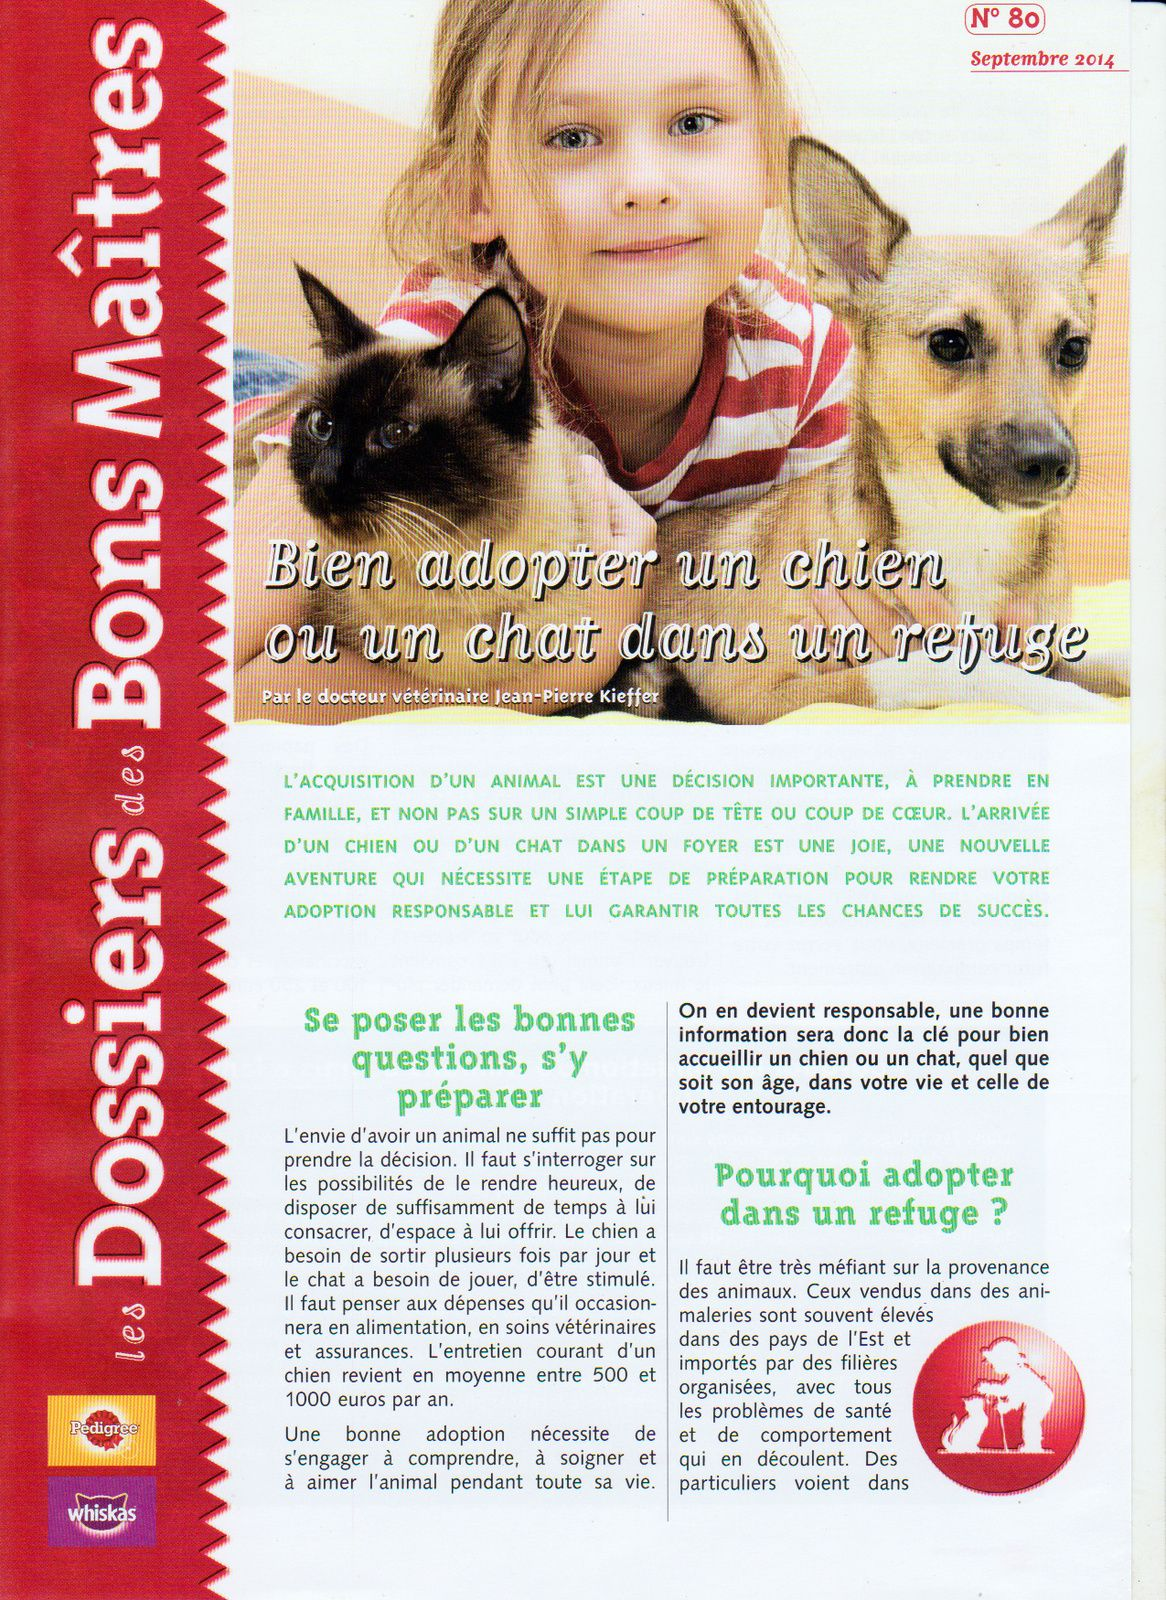 POURQUOI ADOPTER UN ANIMAL DANS UN REFUGE.